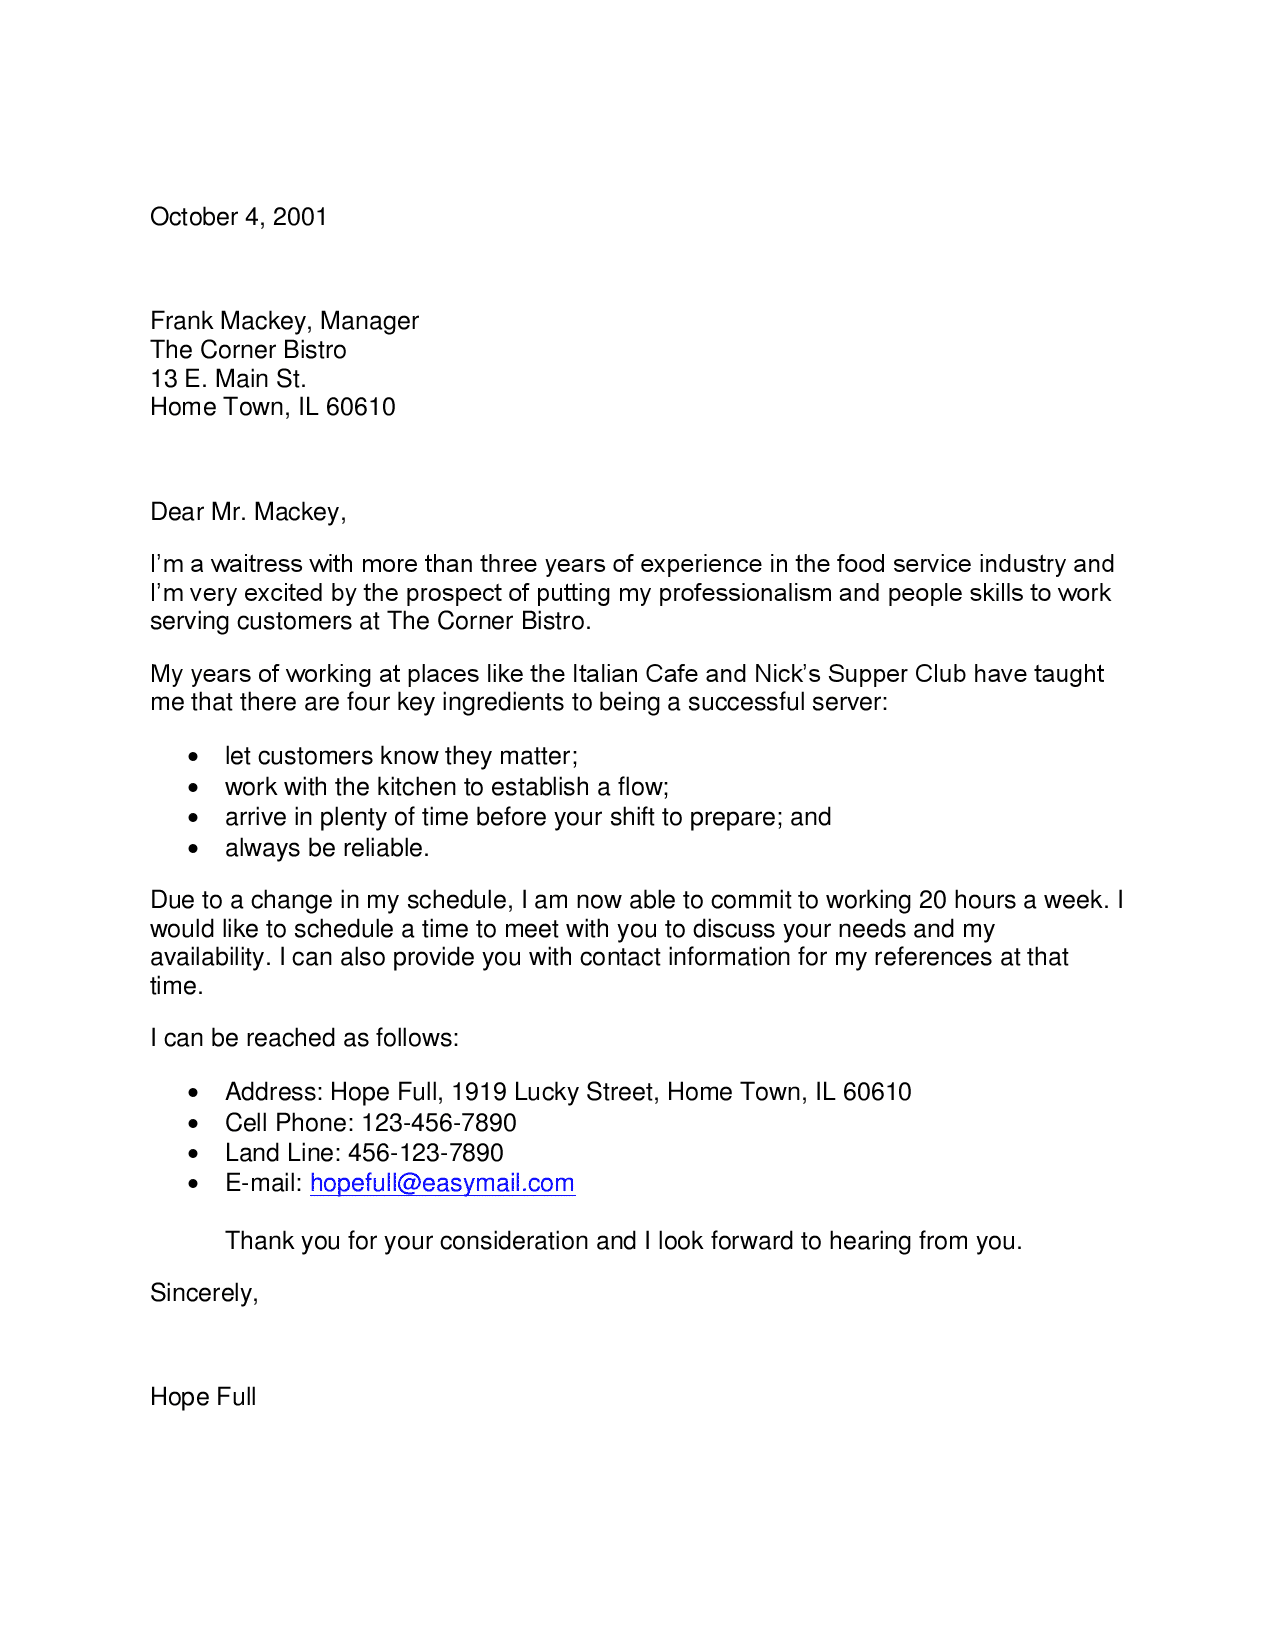 Cover Letter T How To Address A Covering Letter How To Address Cover Letter  Cover Letter